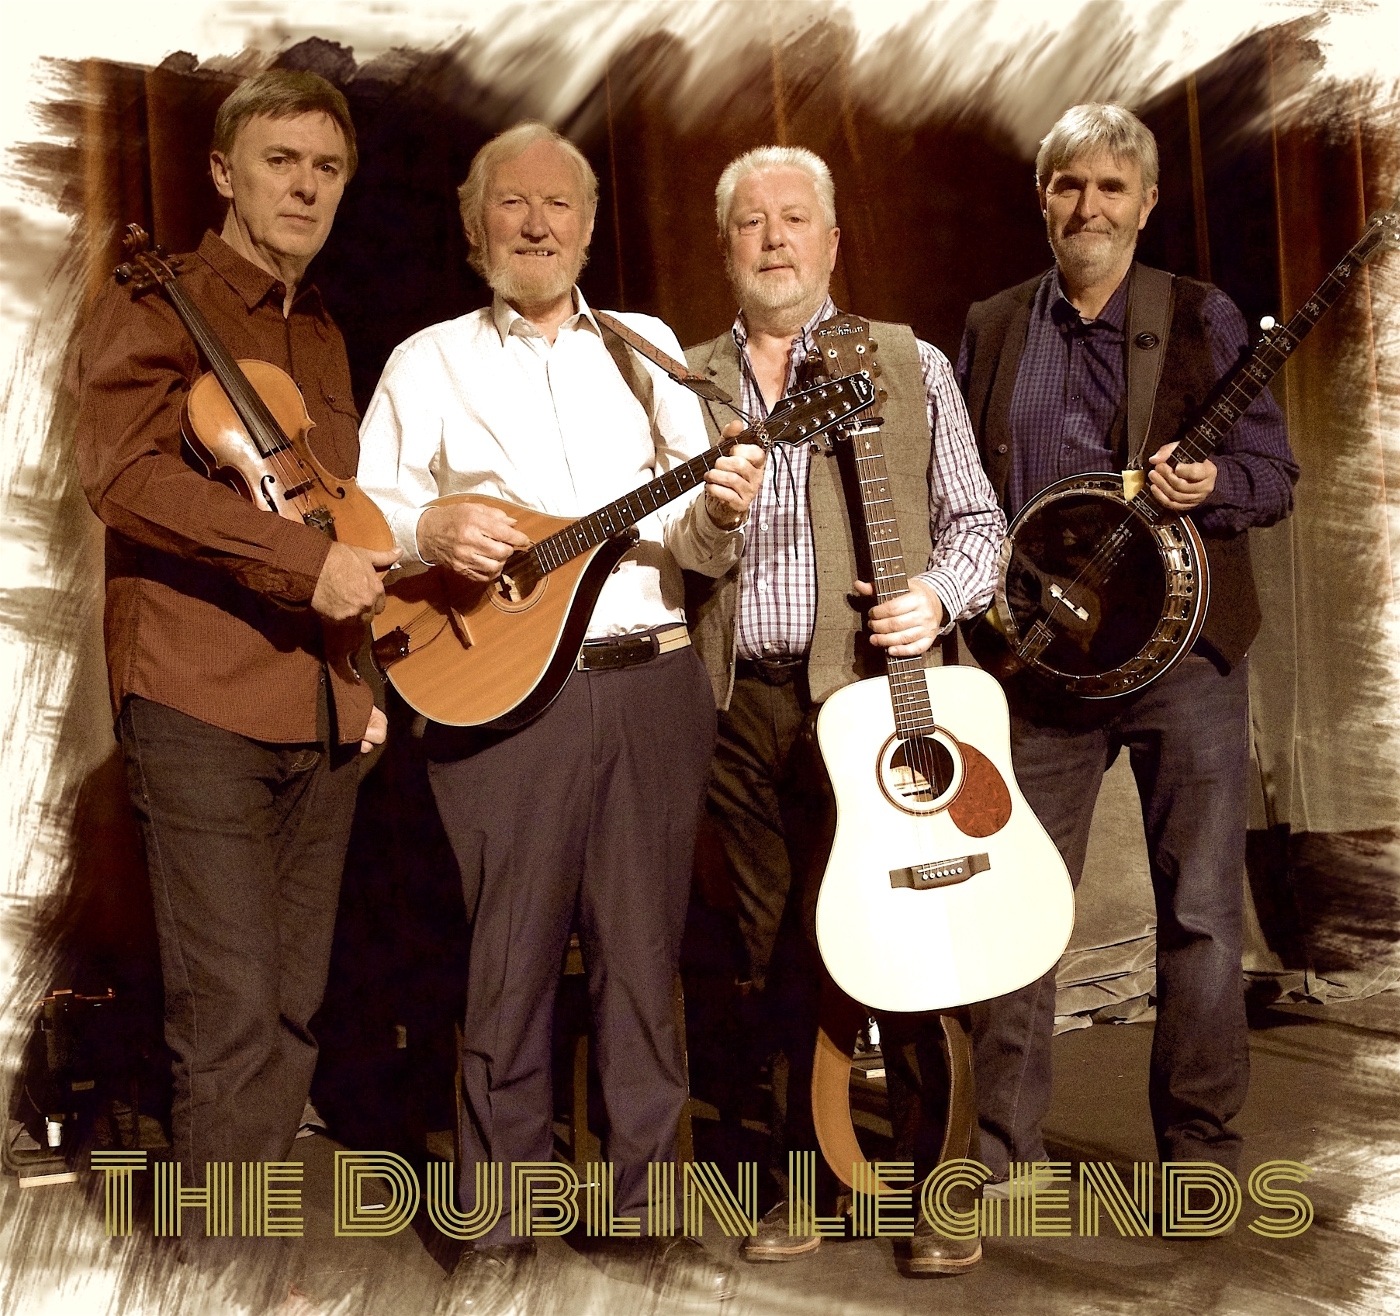 The Dublin Legends © Wiener Metropol